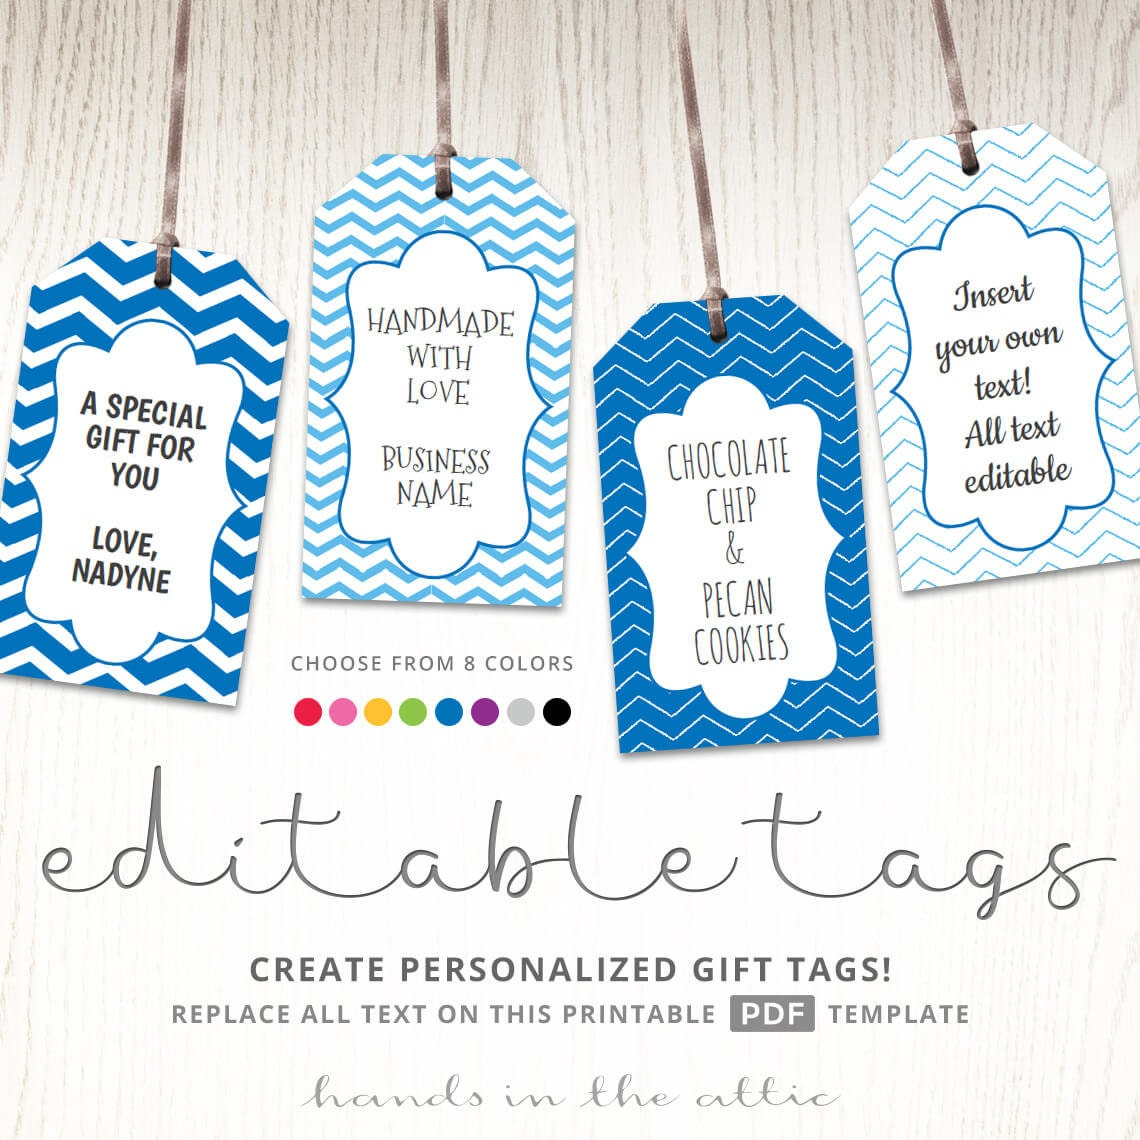 Editable gift tags gift tag template text editable chevron | Etsy